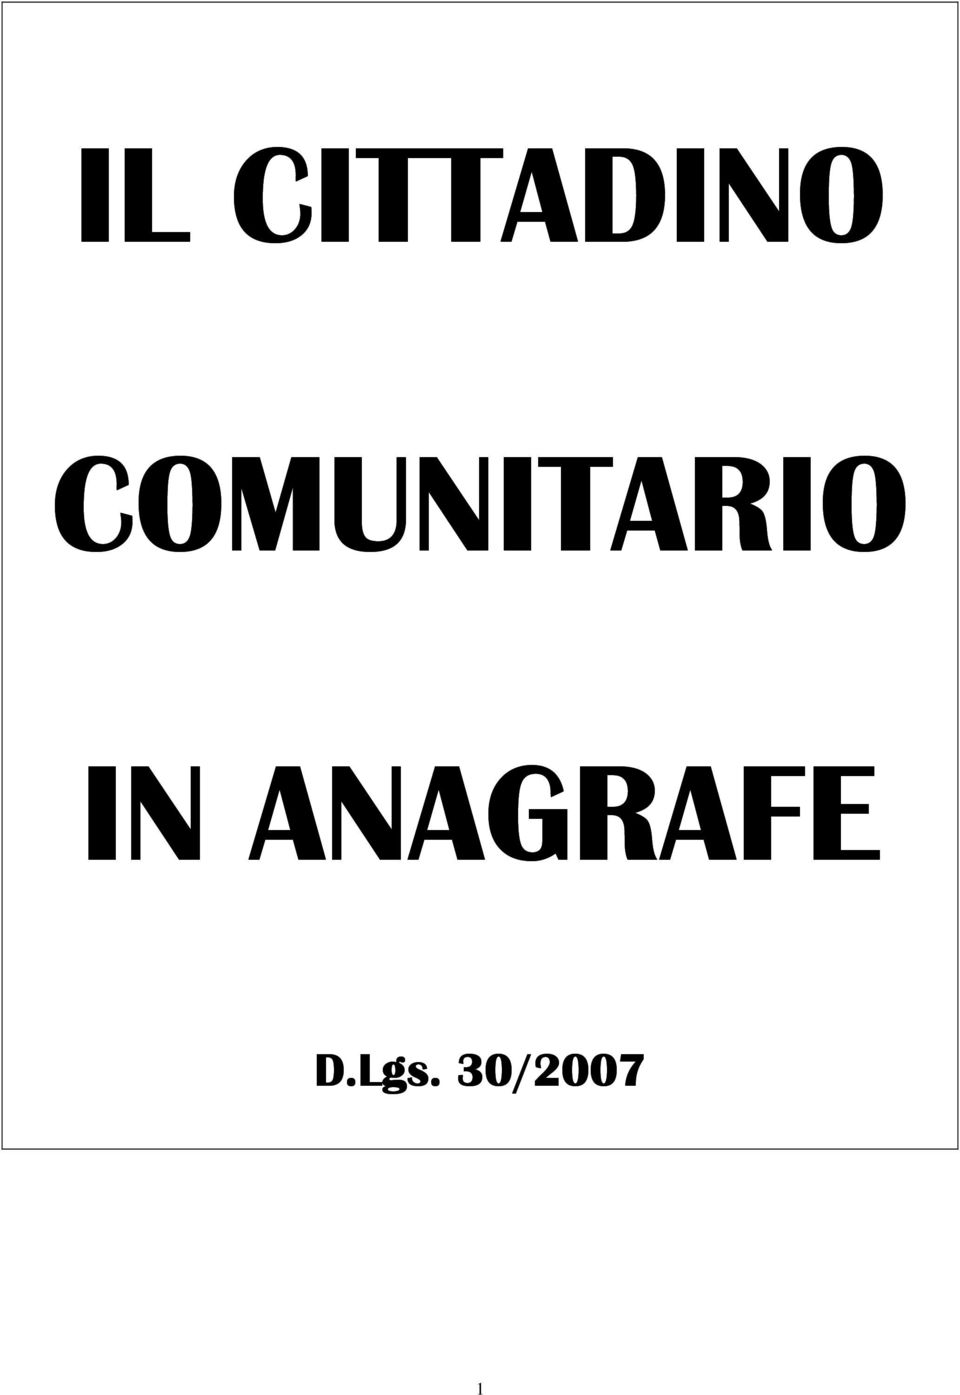 IN ANAGRAFE D.